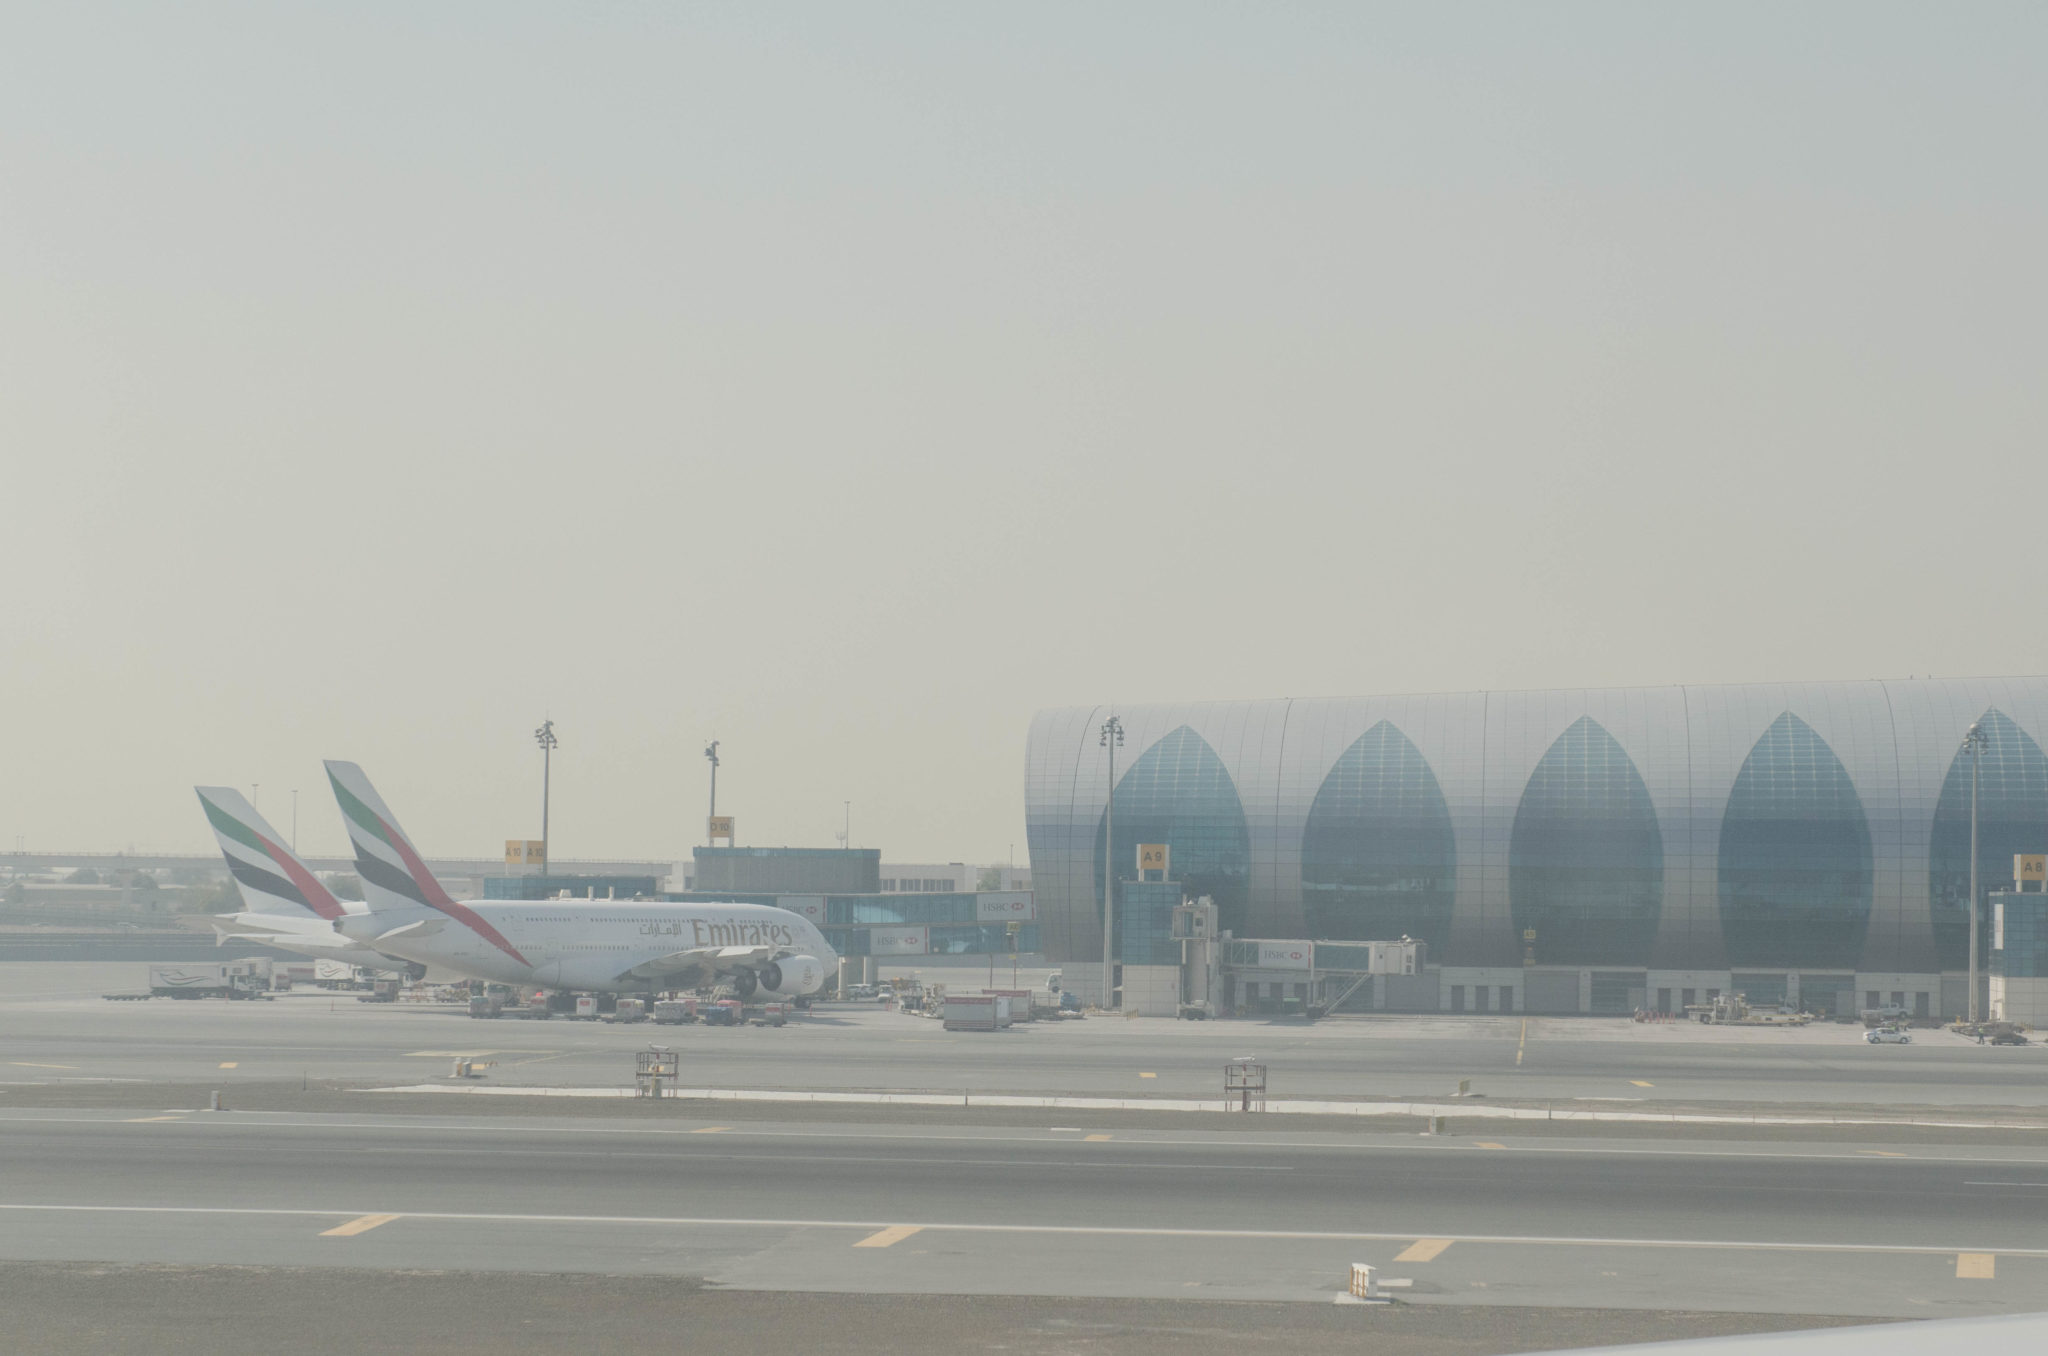 Abflug in der Emirates Business Class vom Dubai International Airport